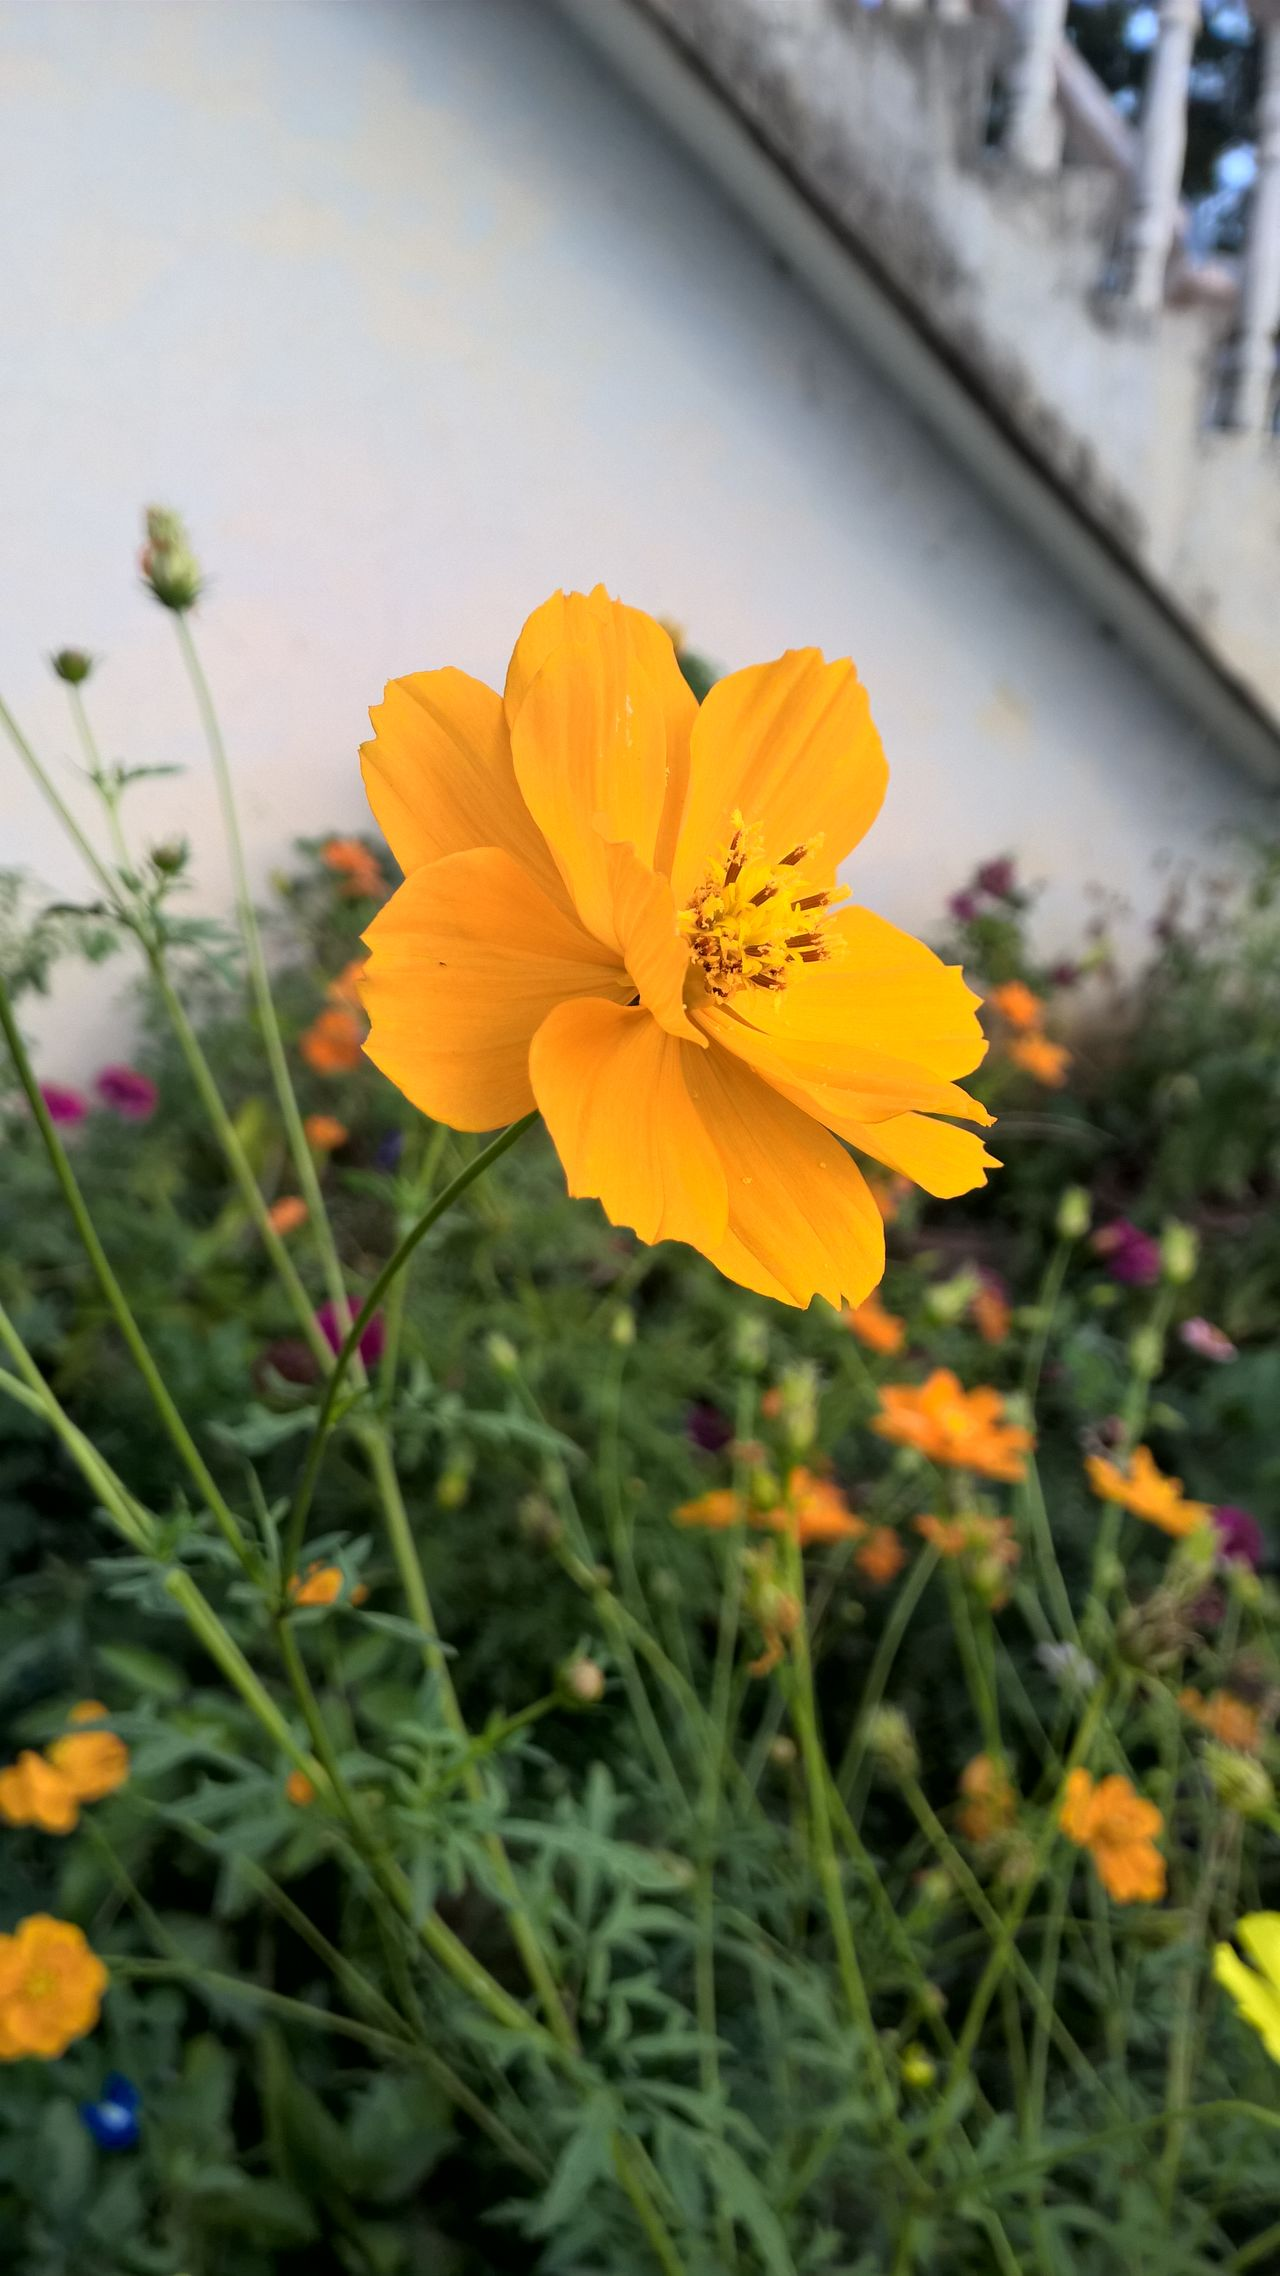 Beauty In Nature Blooming Close-up Cosmos Flower Day Flower Flower Head Fragility Freshness Growth Nature No People Outdoors Petal Plant Yellow